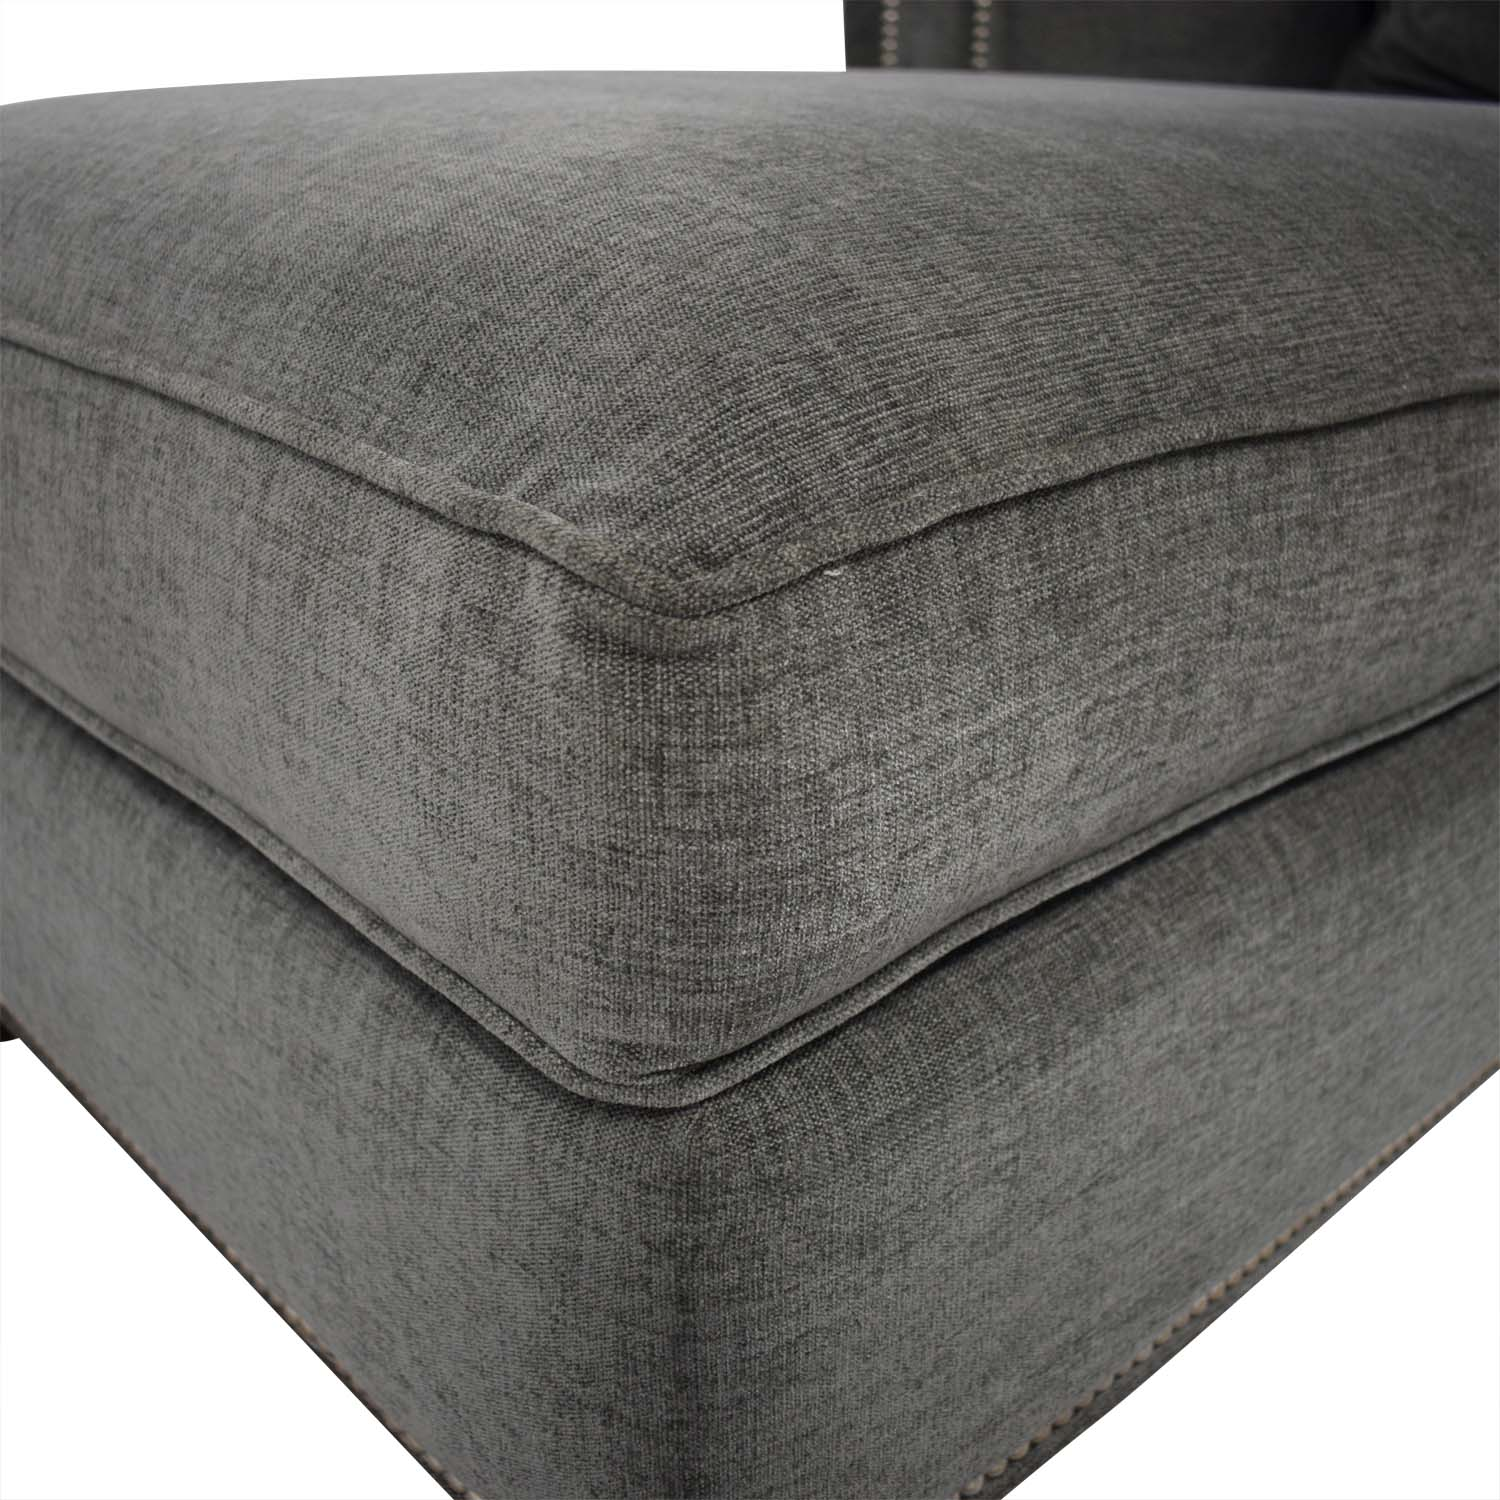 Bassett Furniture Bassett Furniture Chaise coupon